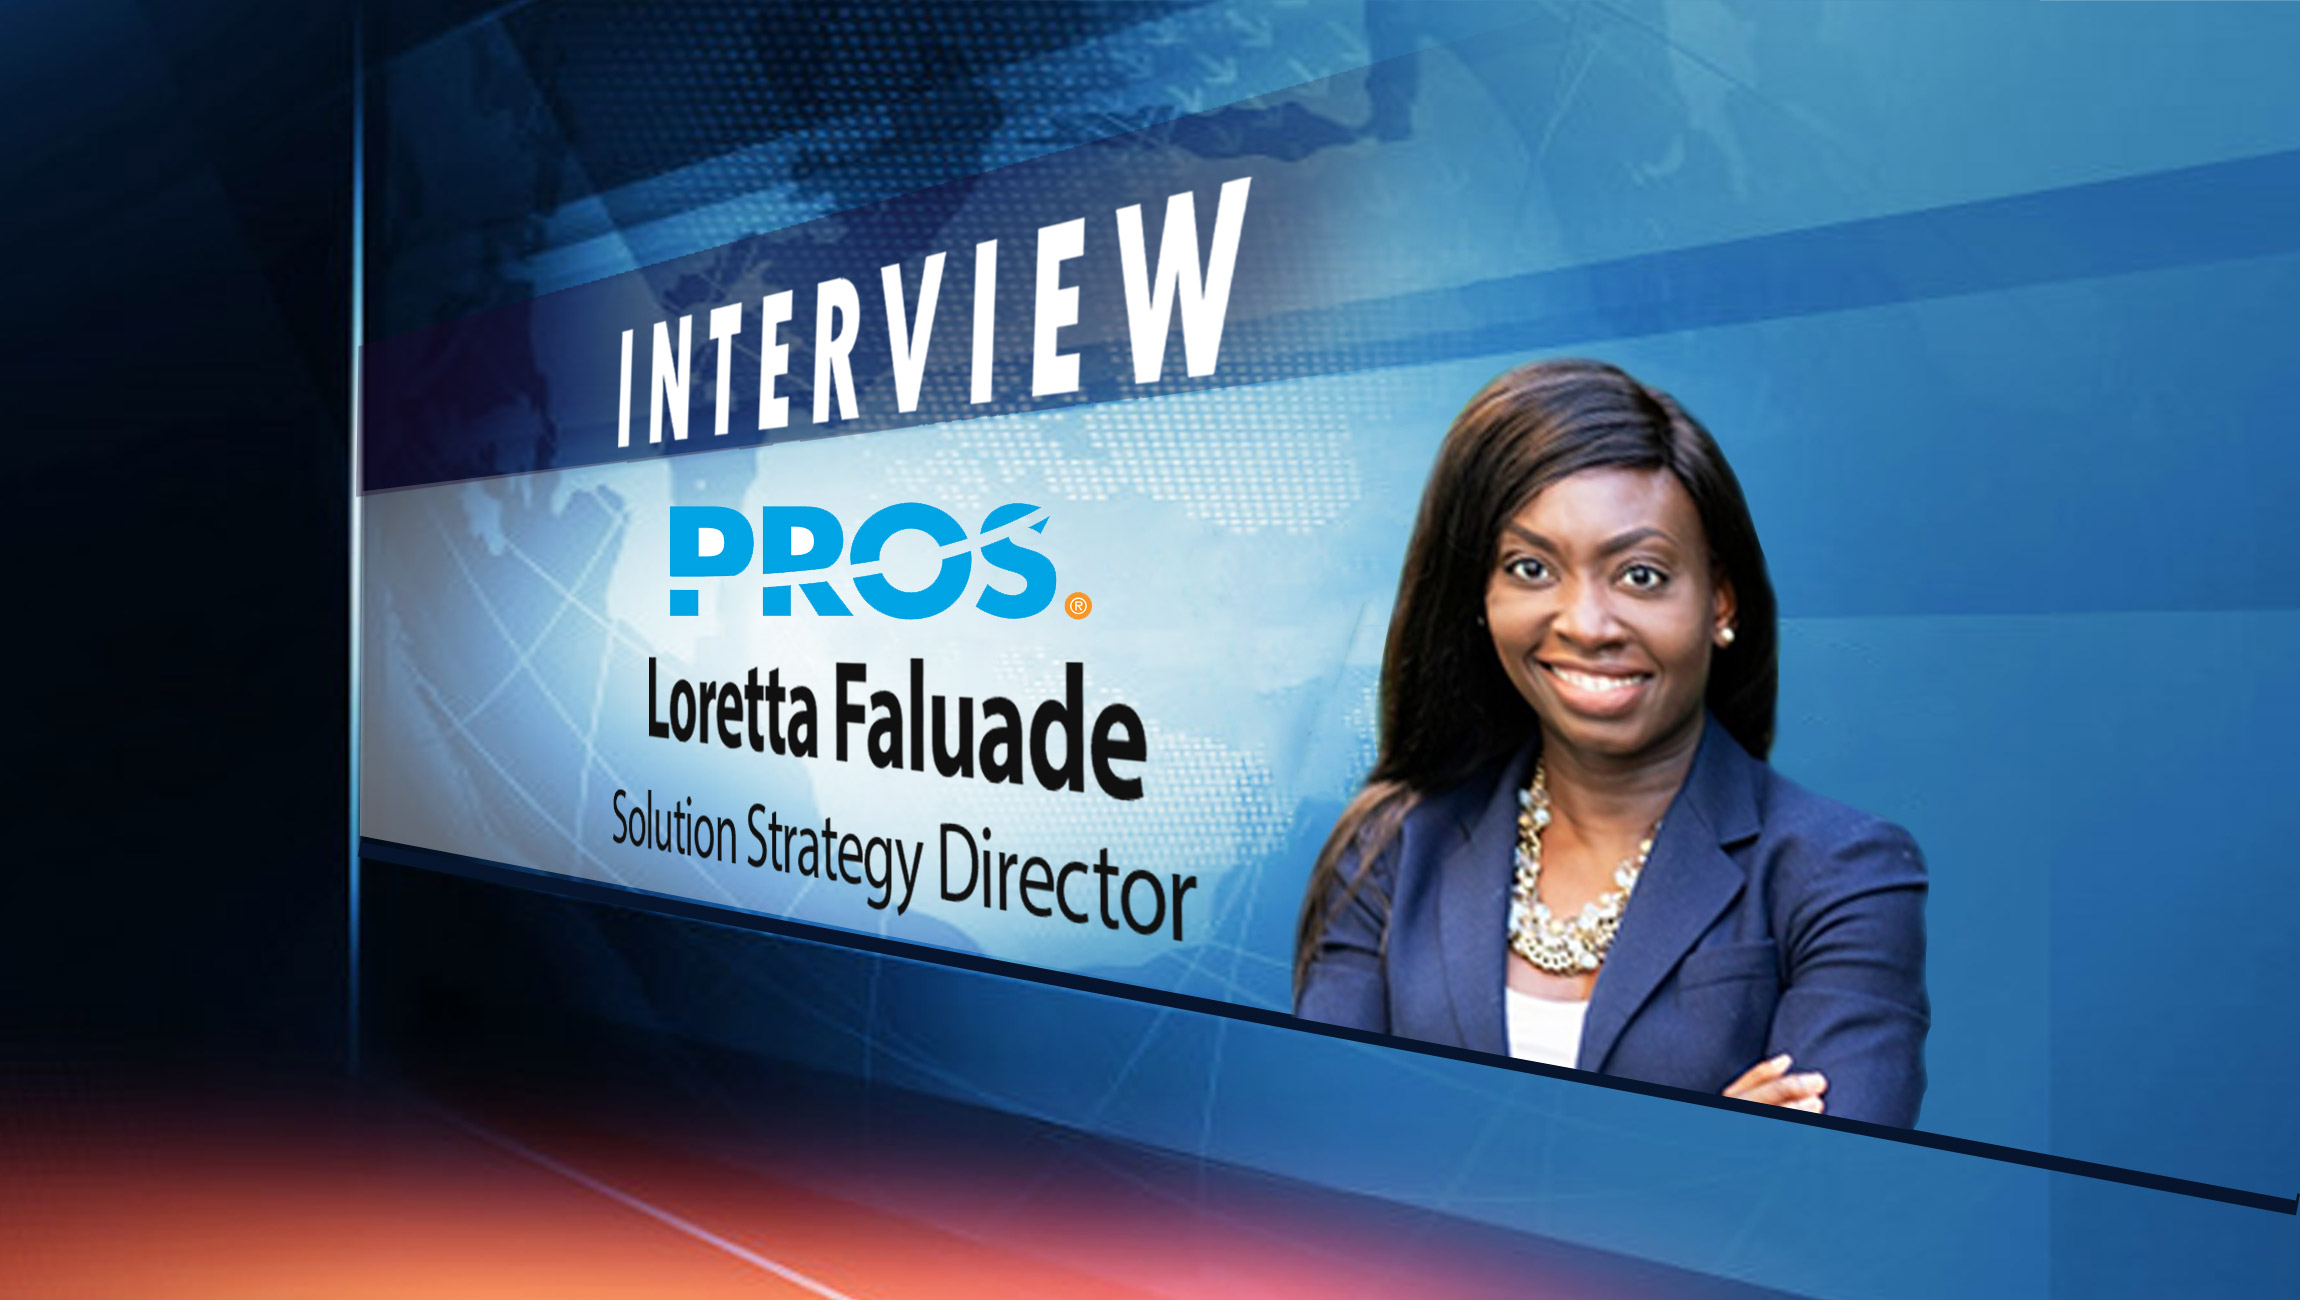 SalesTechStar Interview with Loretta Faluade, Solution Strategy Director at PROS